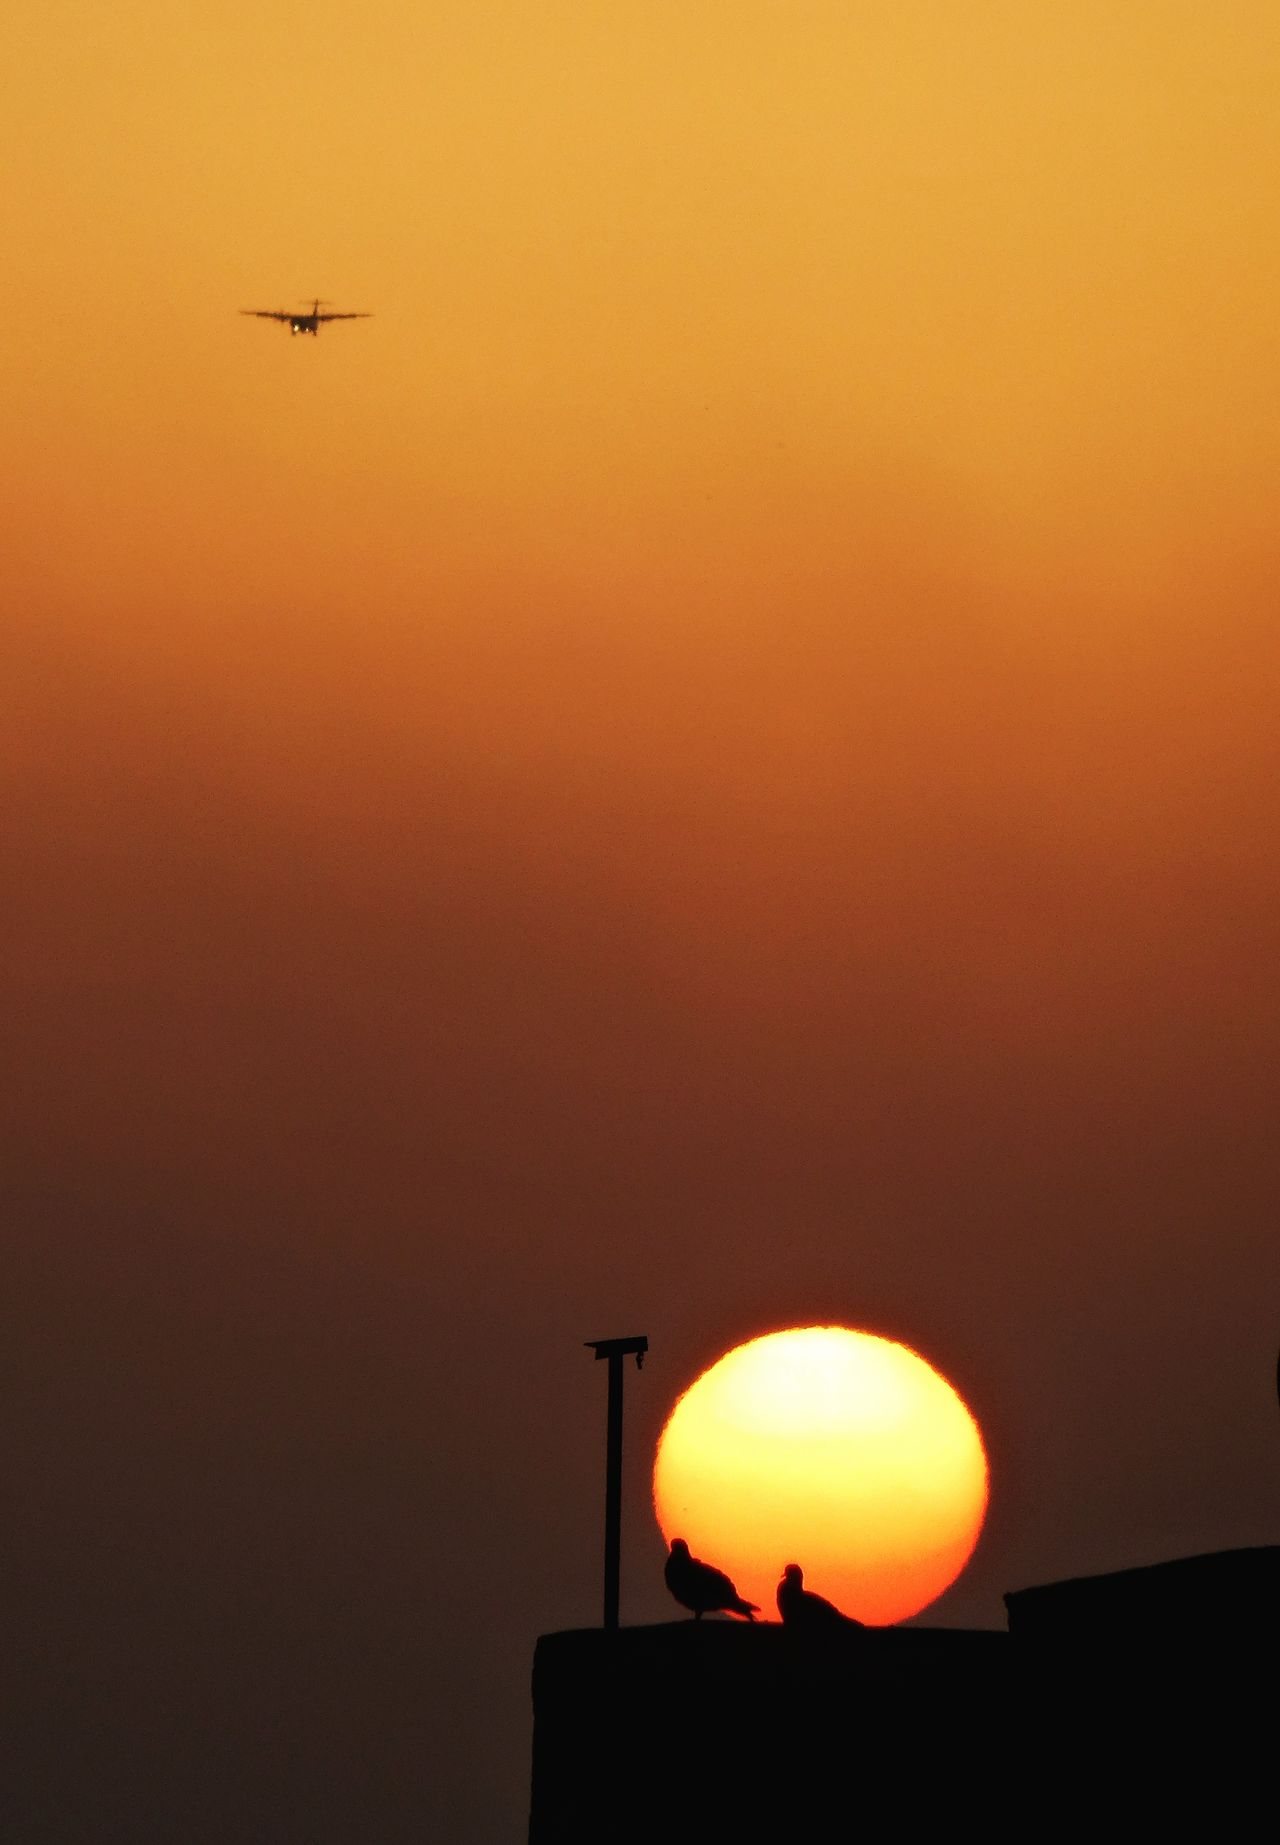 Sunrise Beauty In Nature Airplane Air Vehicle Flying Silhouette Nature Outdoors Sky Birds Orange Color Pigeon Pose Bird Sun